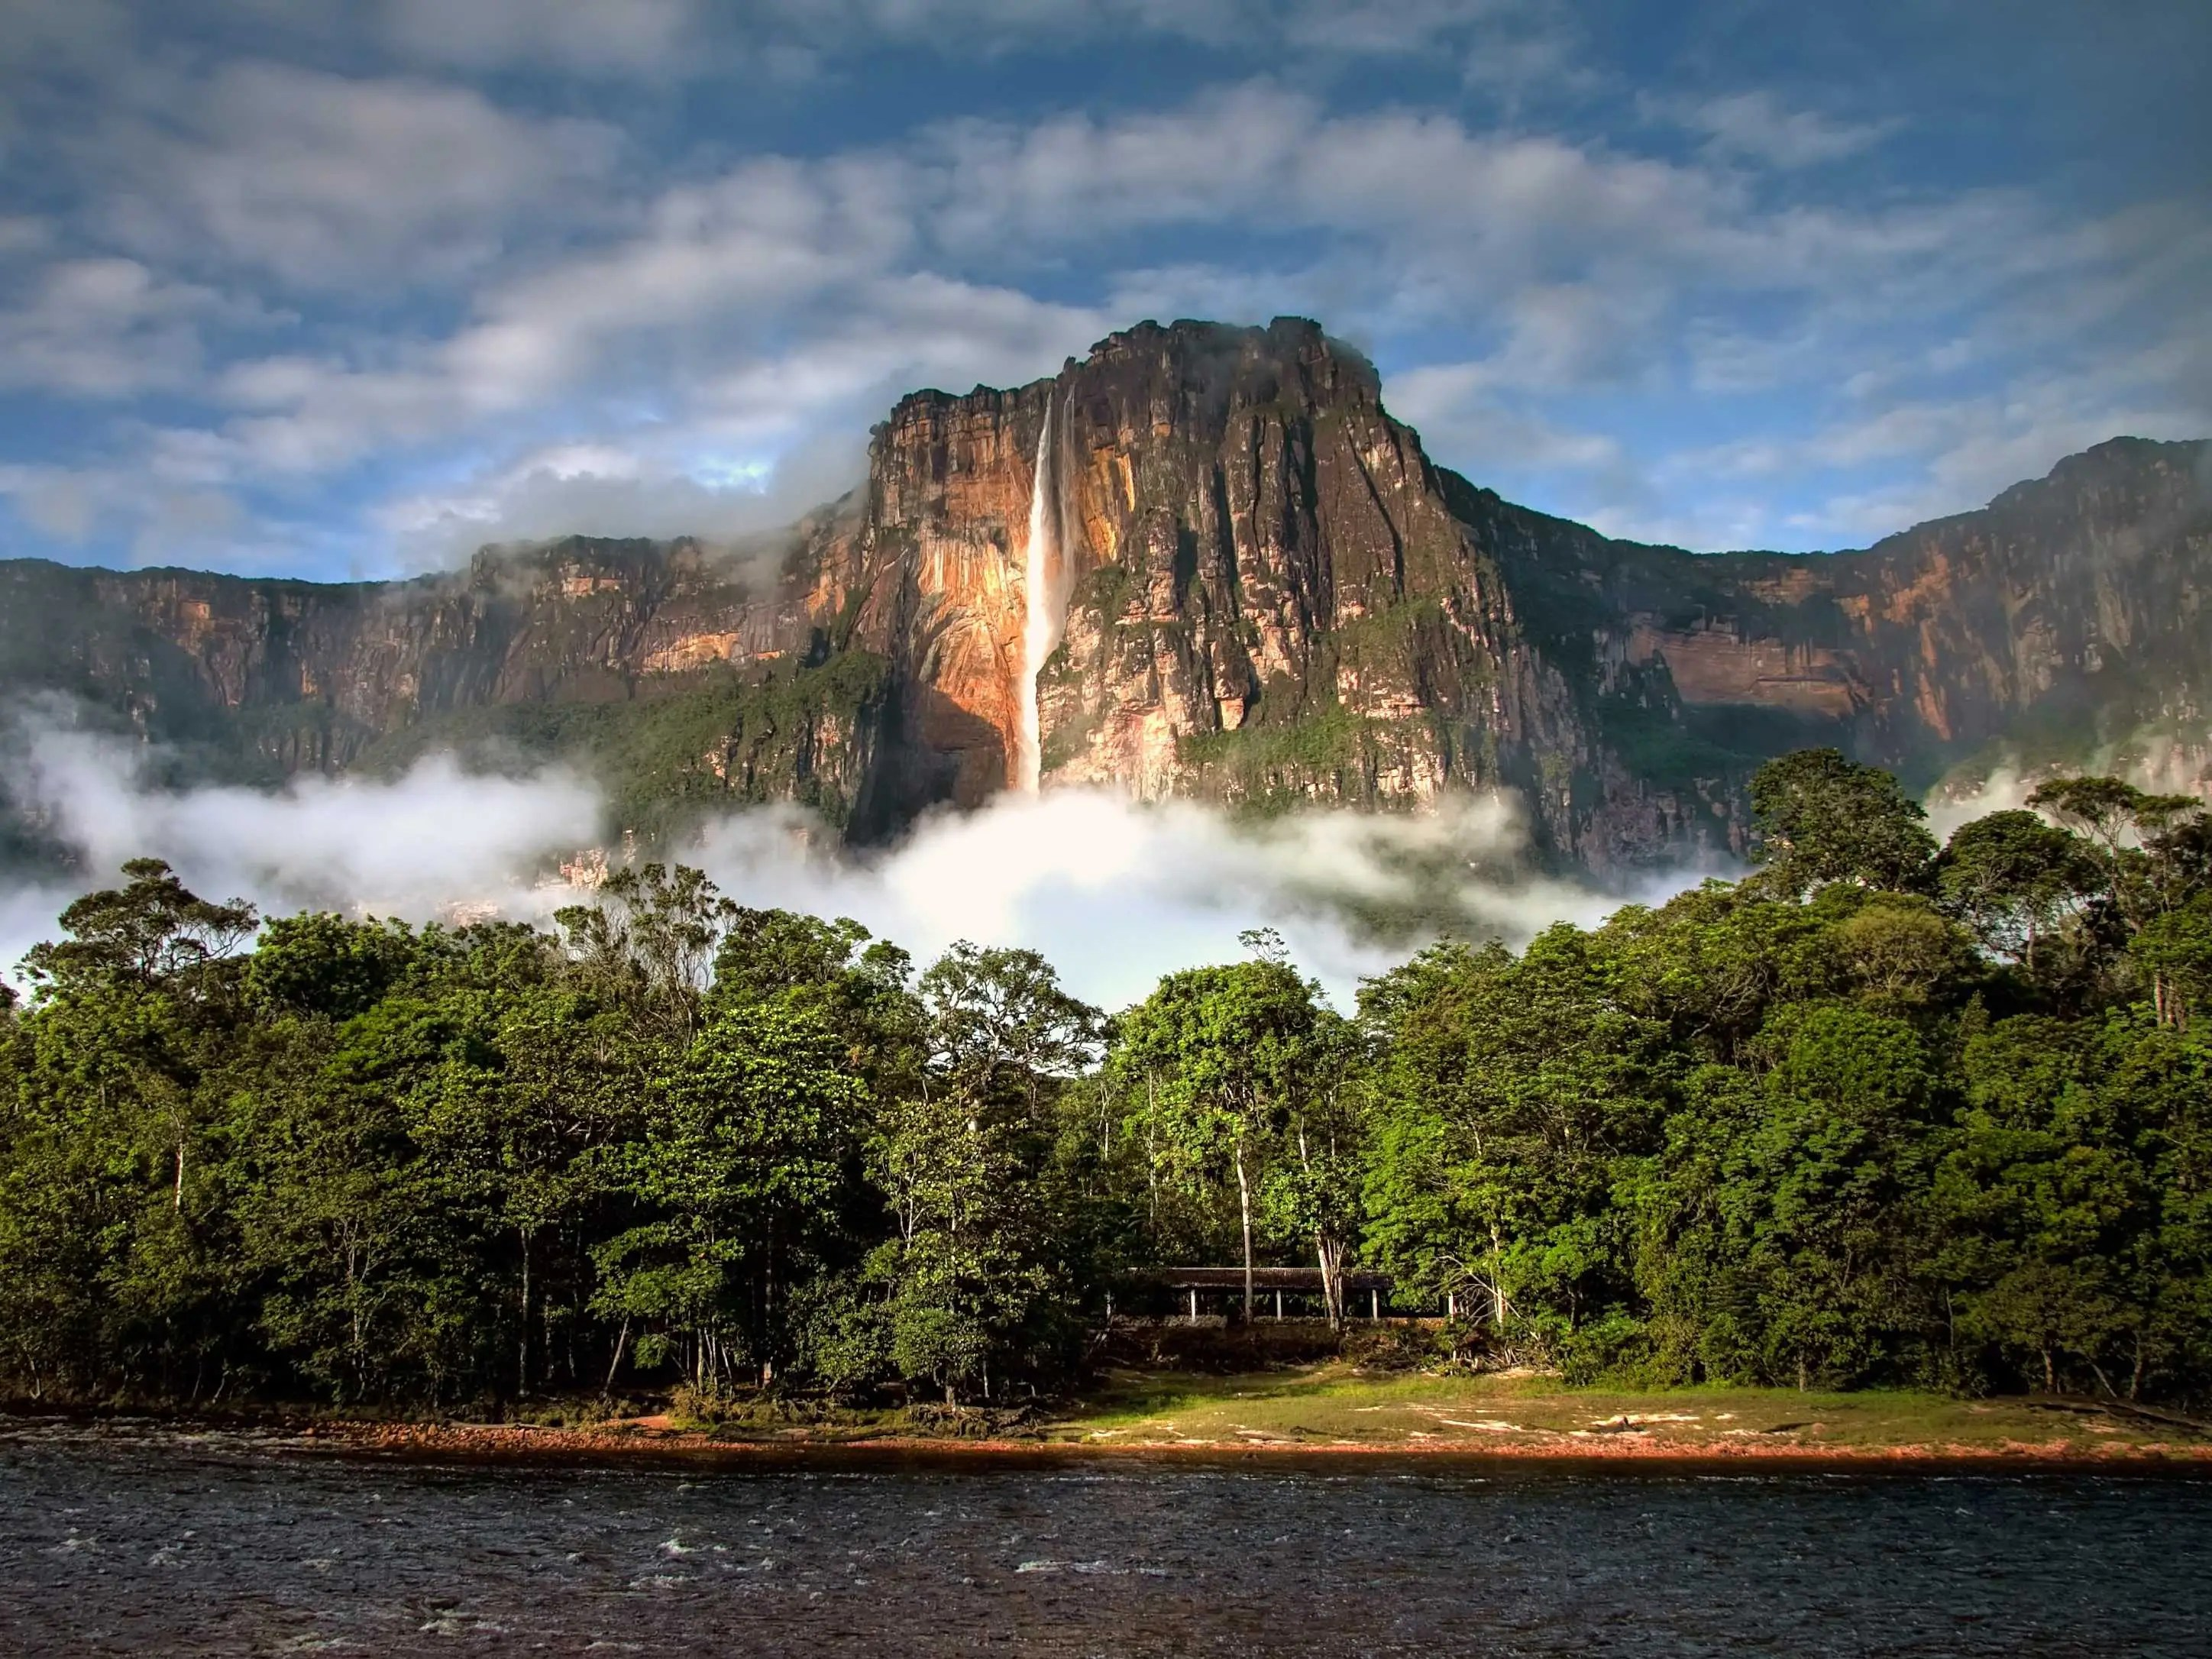 Canaima National Park, located in southeastern Venezuela along the borders of Guyana and Brazil, has a stunning landscape of tabletop mountain formations known as tepuis. It is also home to the world's highest waterfall, Angel Falls, whose highest point reaches a staggering 3,212 feet, or 979 meters.